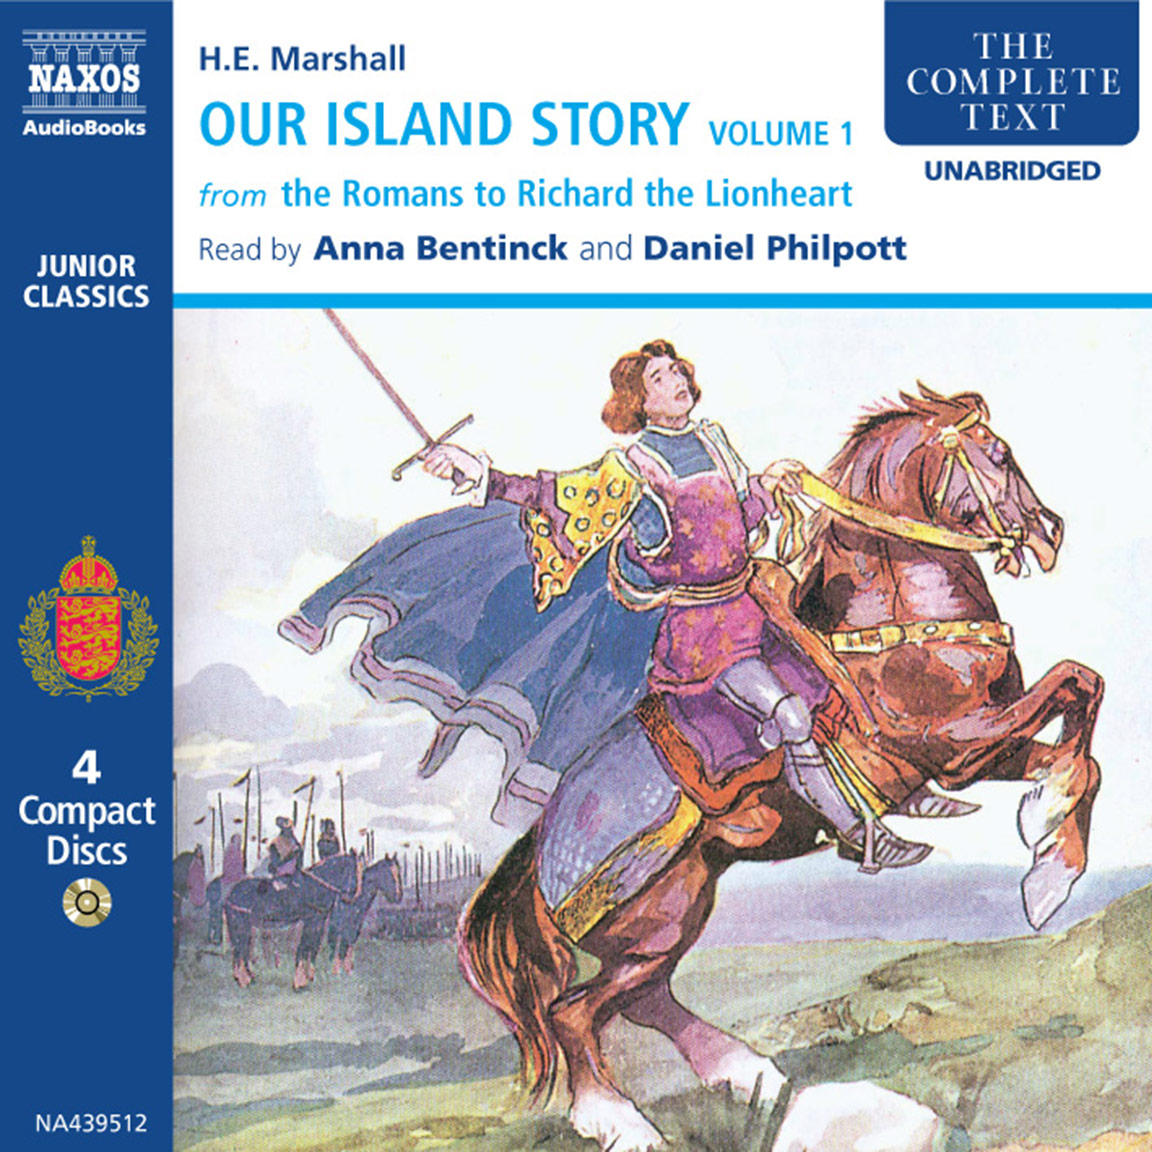 Our Island Story – Volume 1 (unabridged)